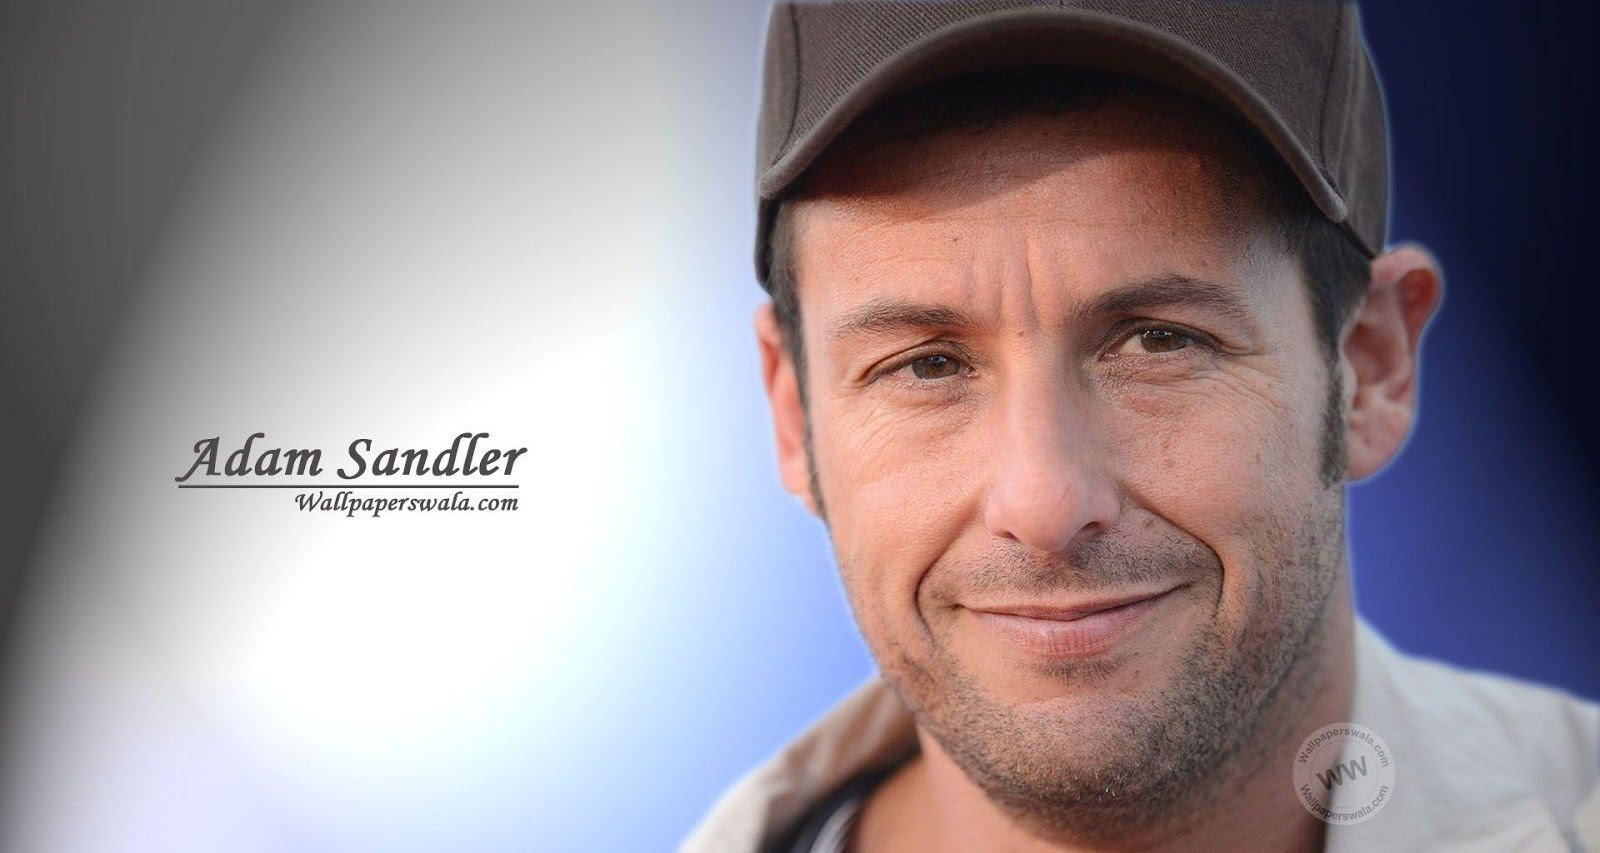 Adam Sandler Wallpapers, Pictures, Image HD